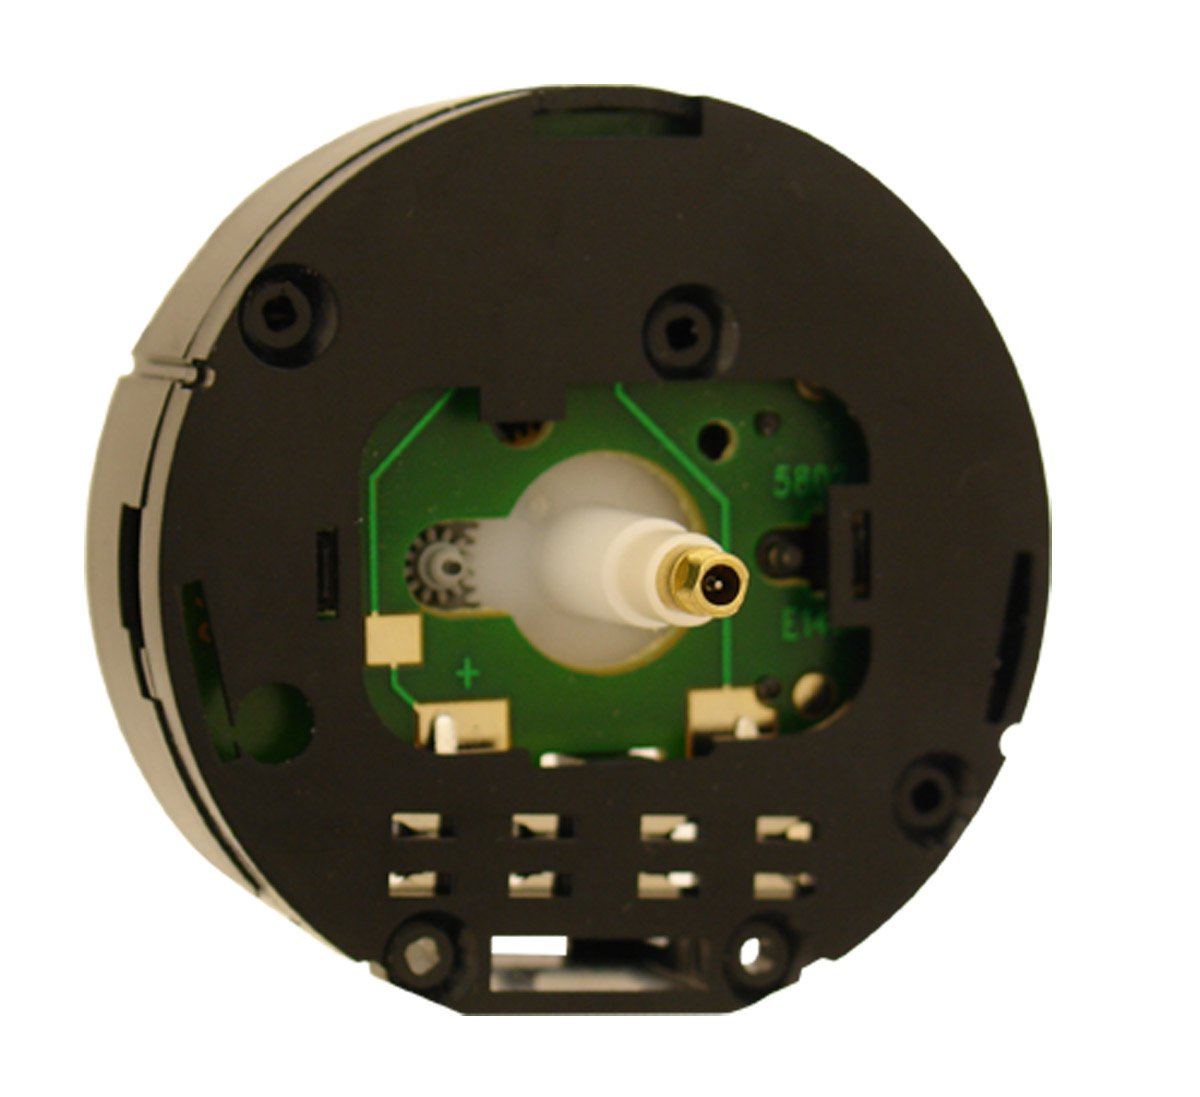 New Round Clock Movement For Miniature Clocks With Extra